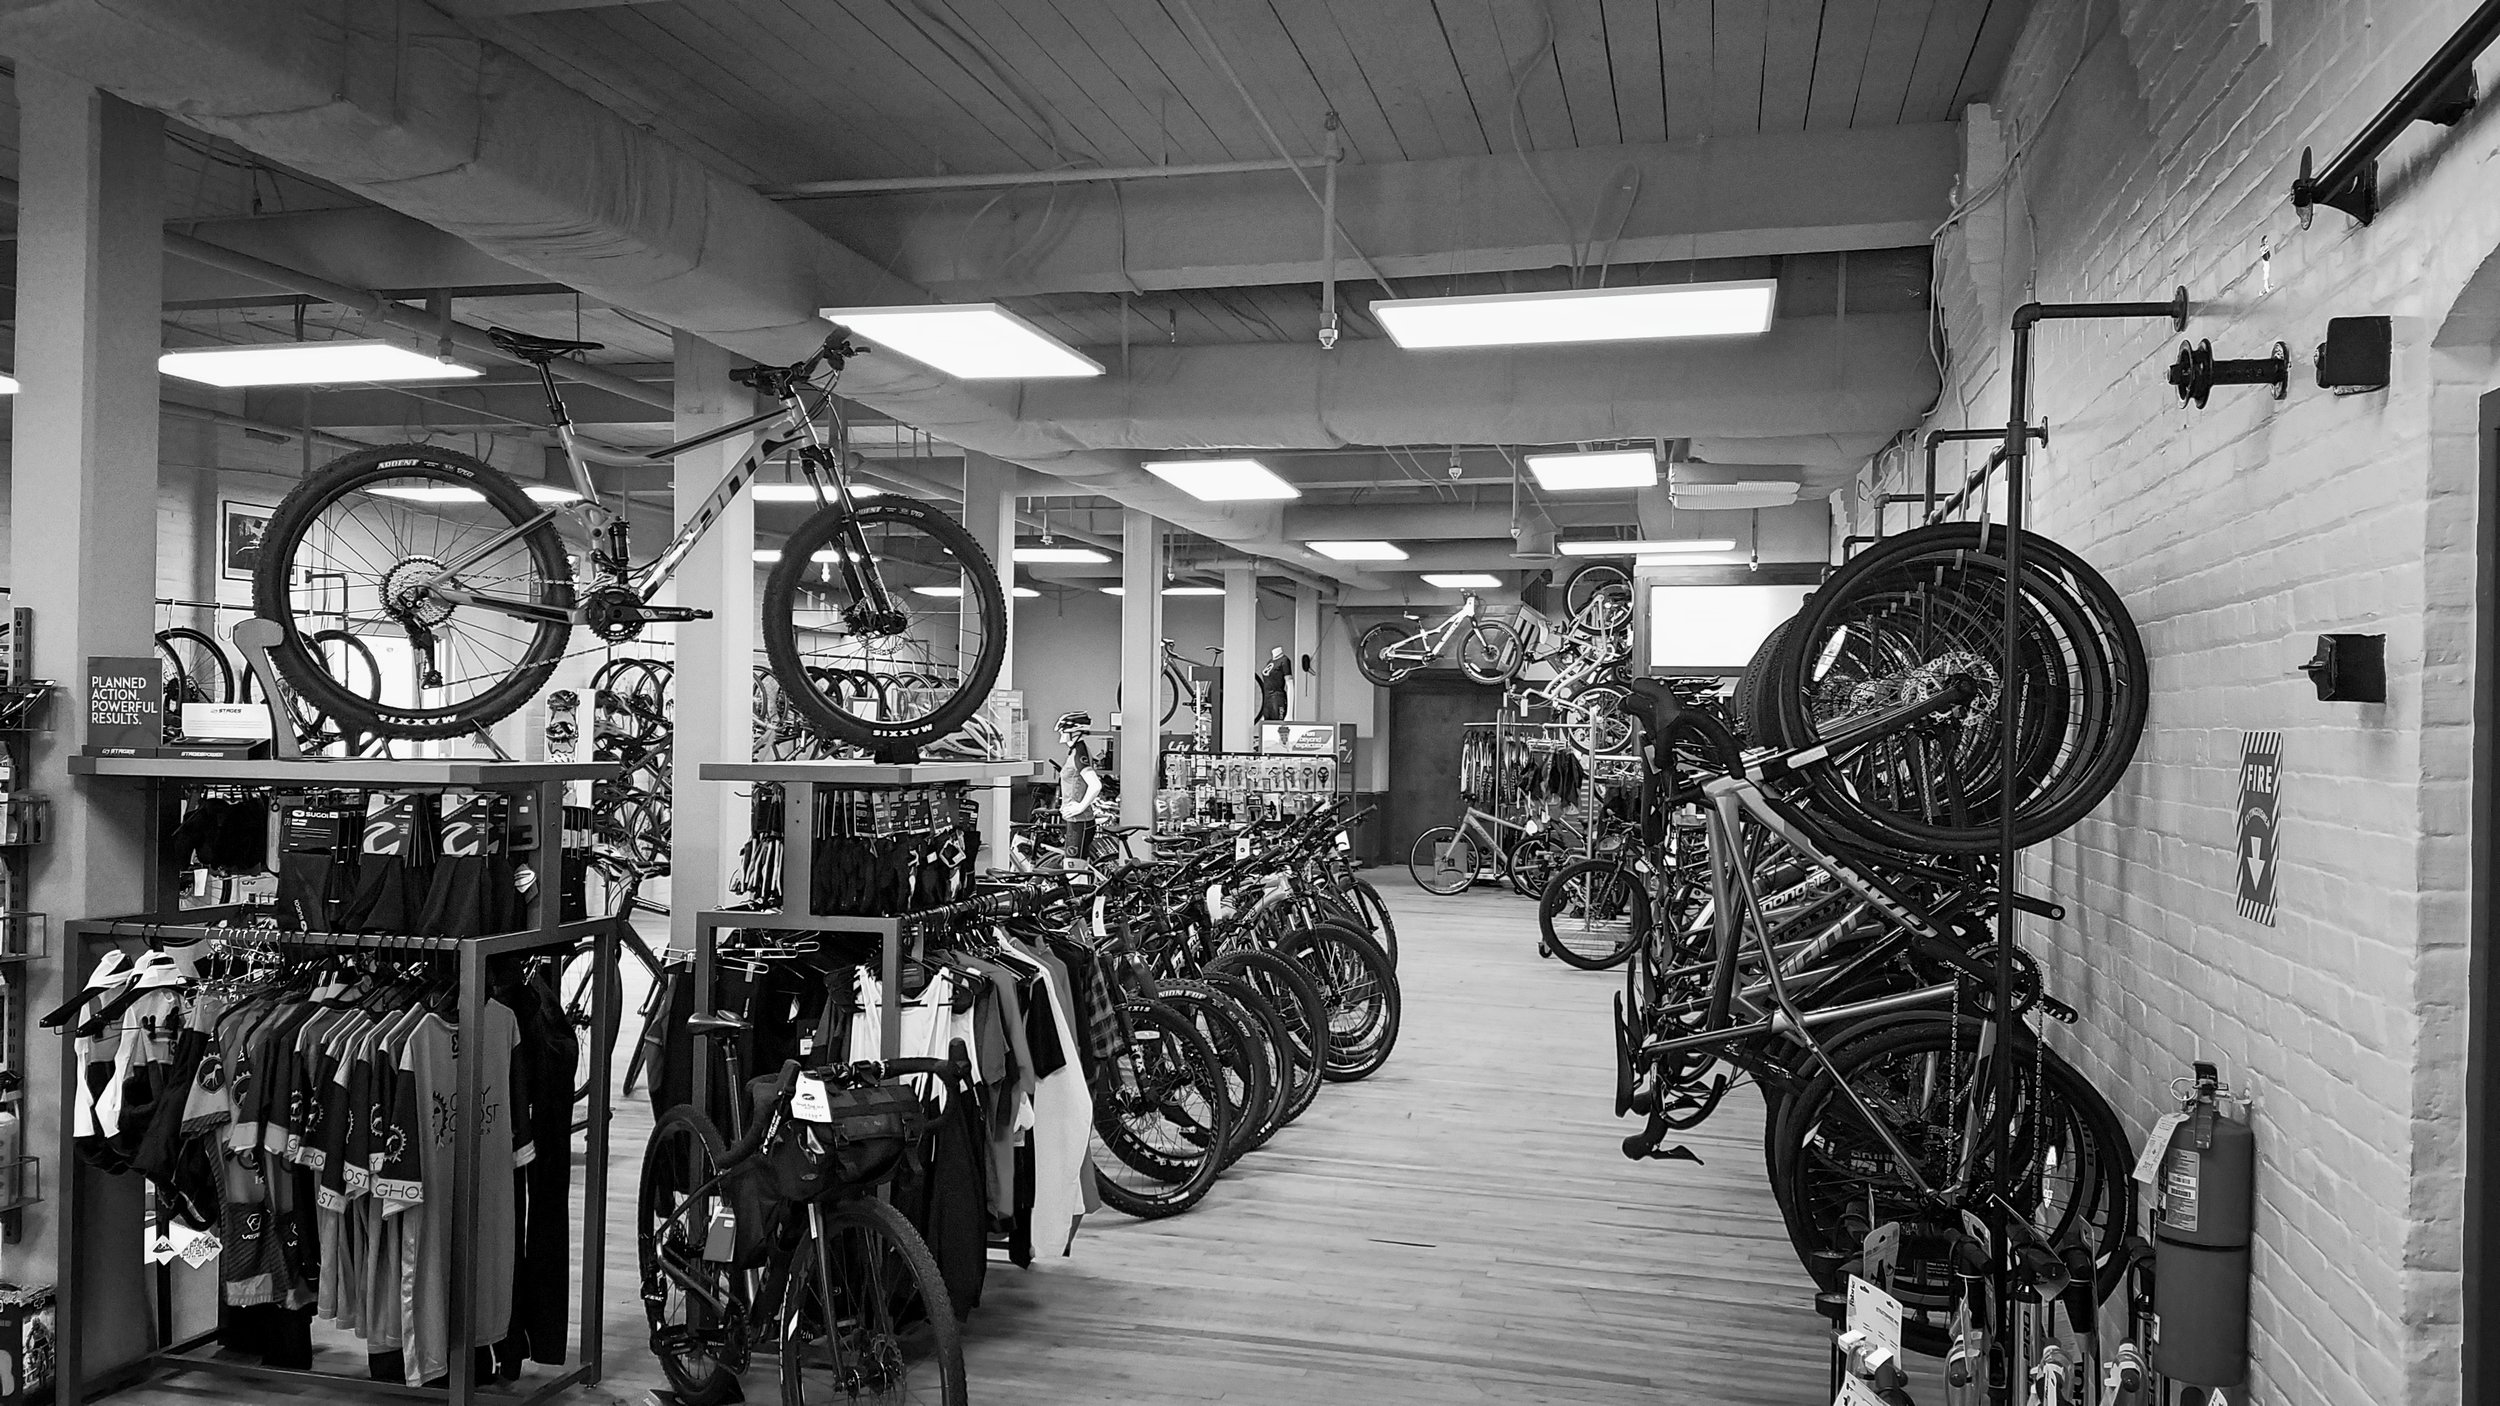 grey ghost bicycles expert bike fitting sales and service. giant, cannondale, niner, k. bedford customs